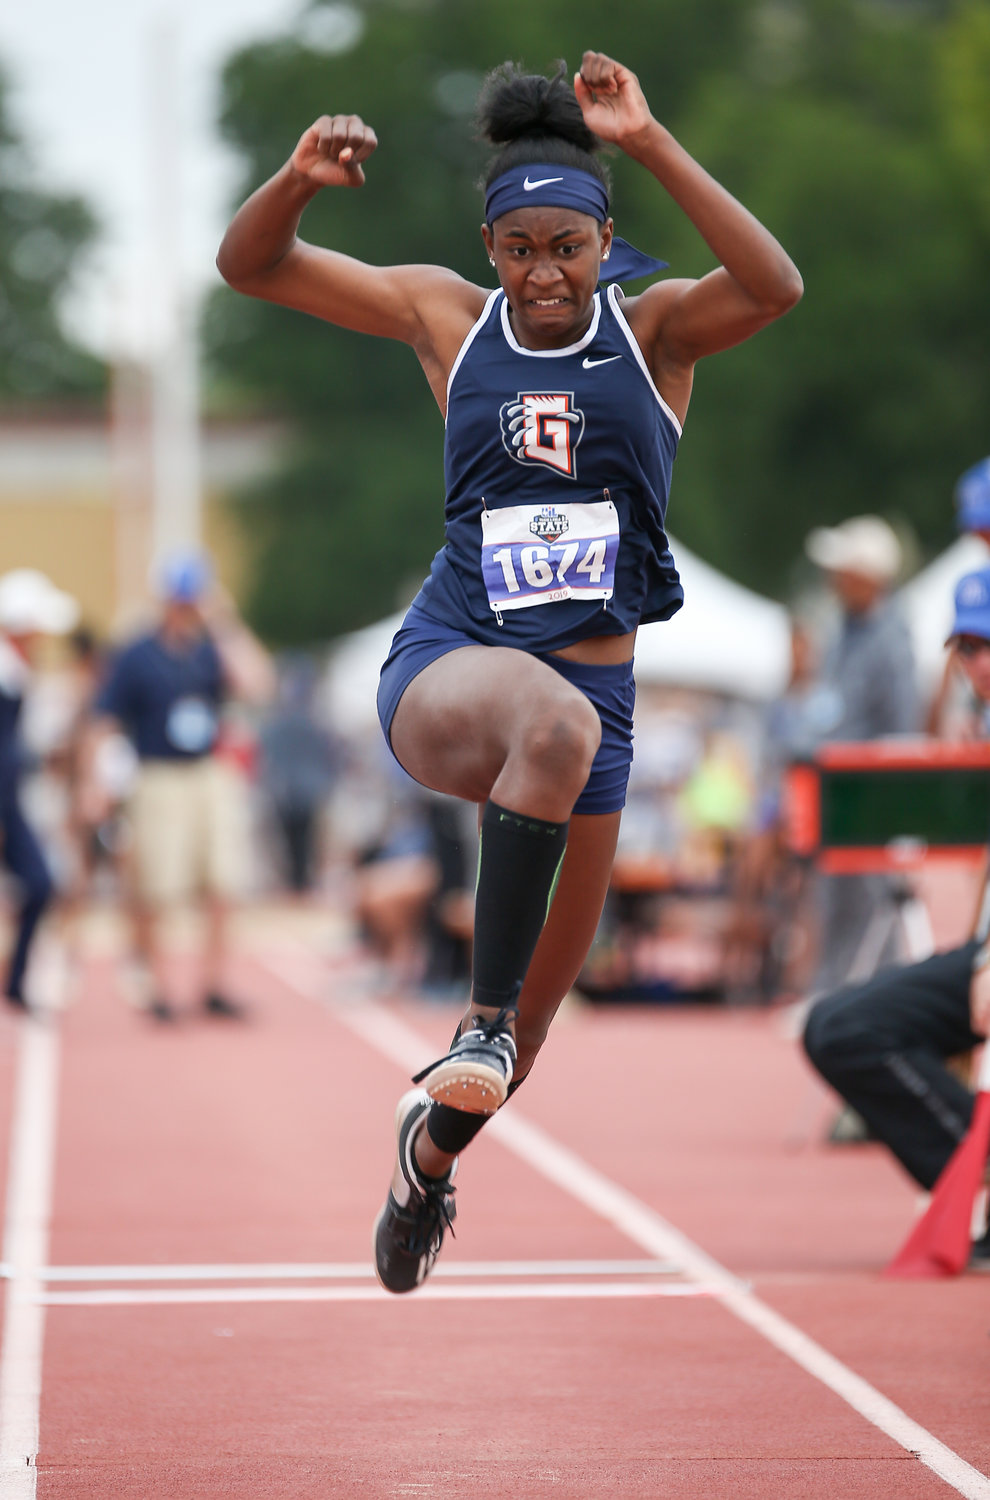 Gabrielle Thomas of Glenn High School competes in the Class 5A girls triple jump event at the UIL State Track and Field Meet on Friday, May 10, 2019 at Mike A. Myers Stadium in Austin, Texas.